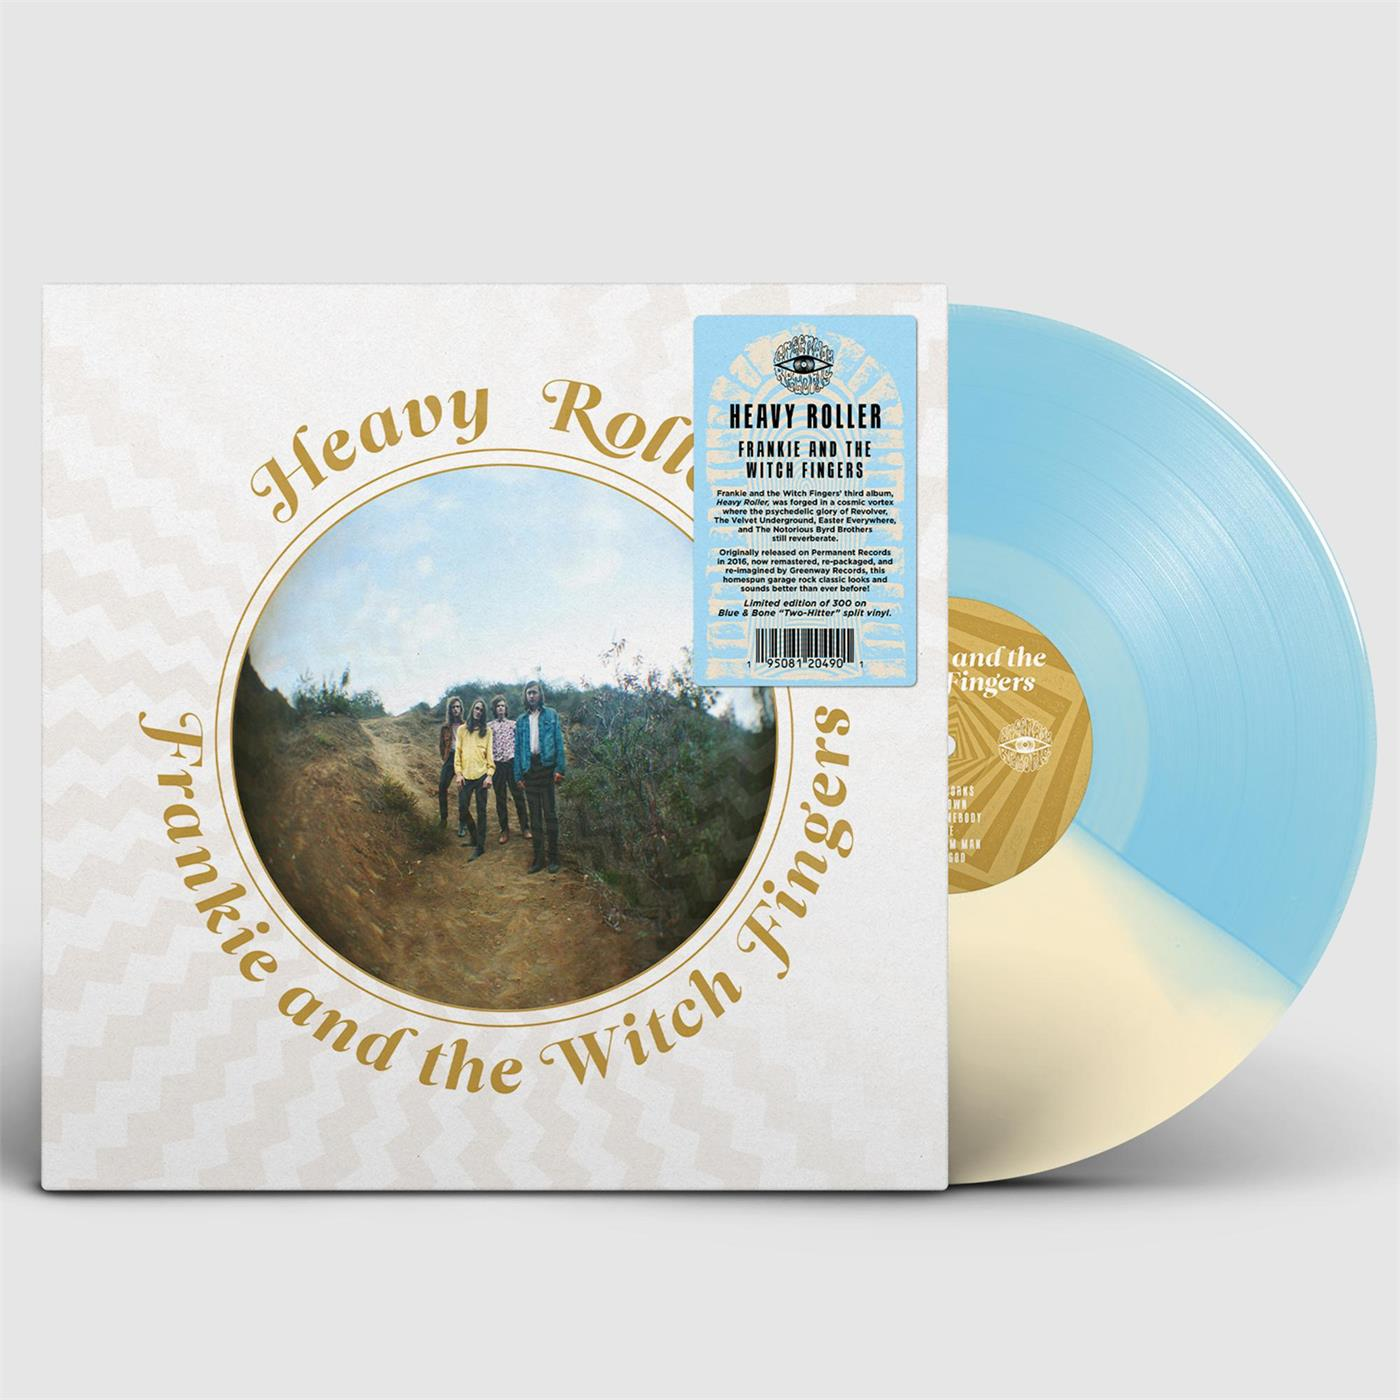 GWY066LTD1 Greenway Records  Frankie And The Witch Fingers Heavy Roller (LP)